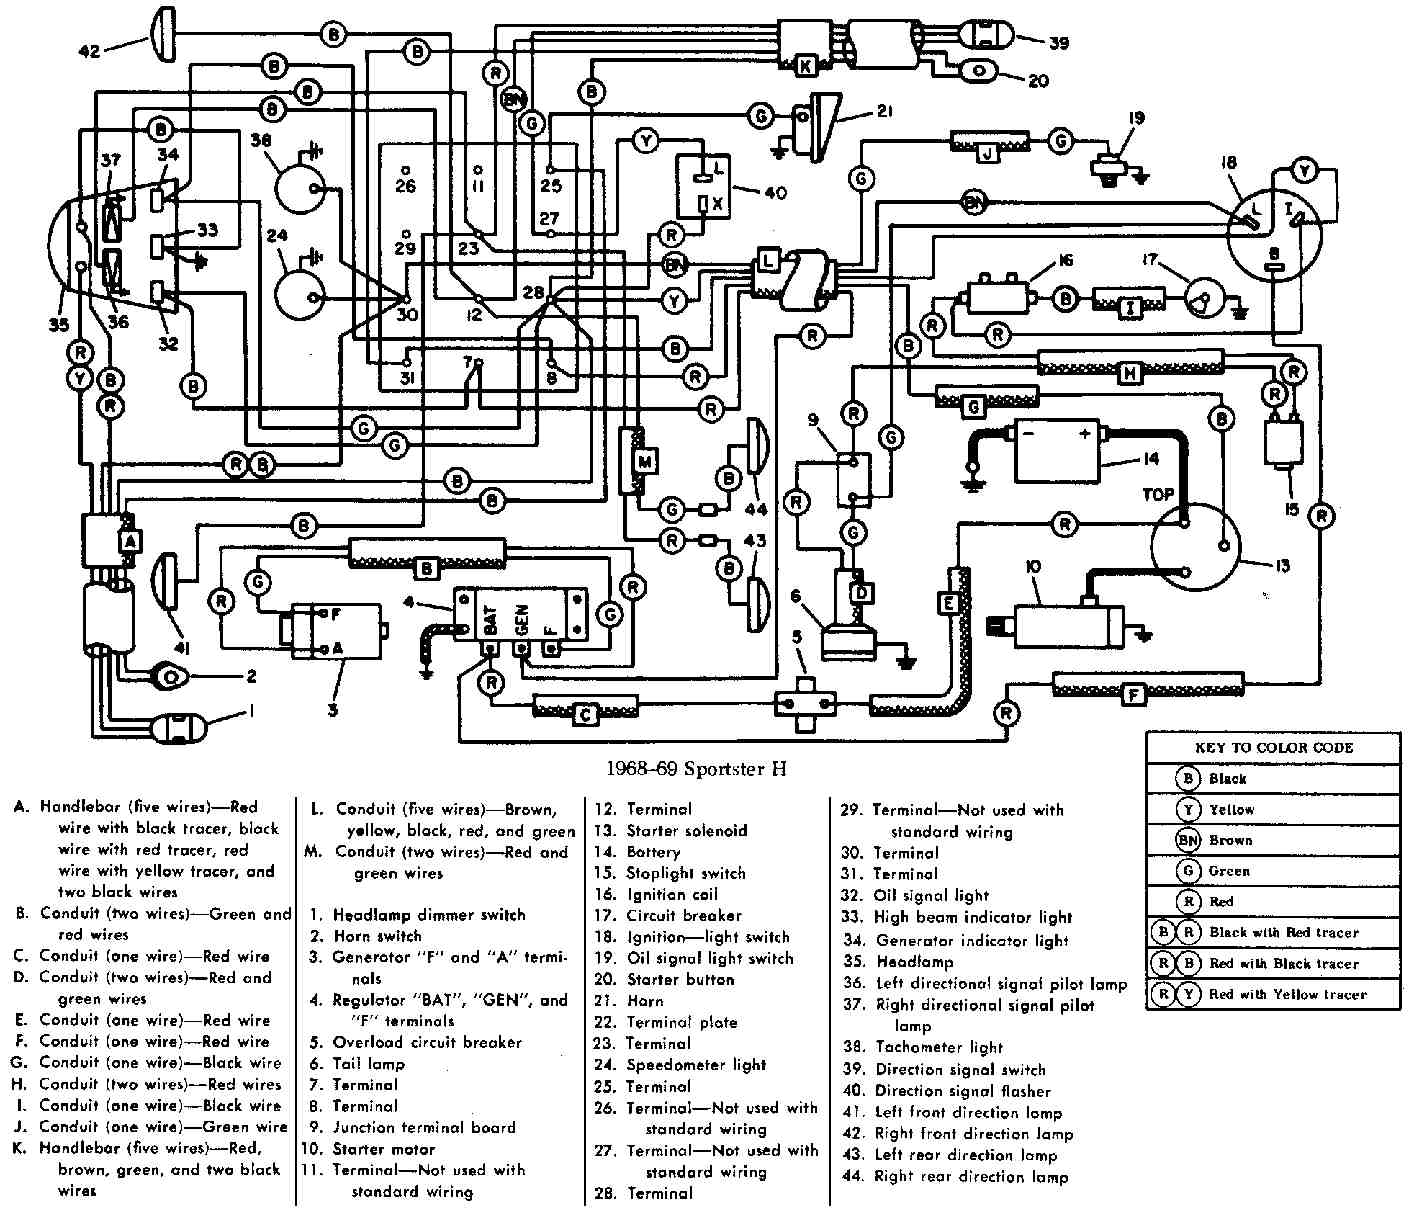 Harley+Davidson+Sportster+1968 1969+Electrical+Wiring+Diagram 1968 mustang wiring diagrams with tach, please help ford mustang 1968 ford mustang wiring diagram at soozxer.org